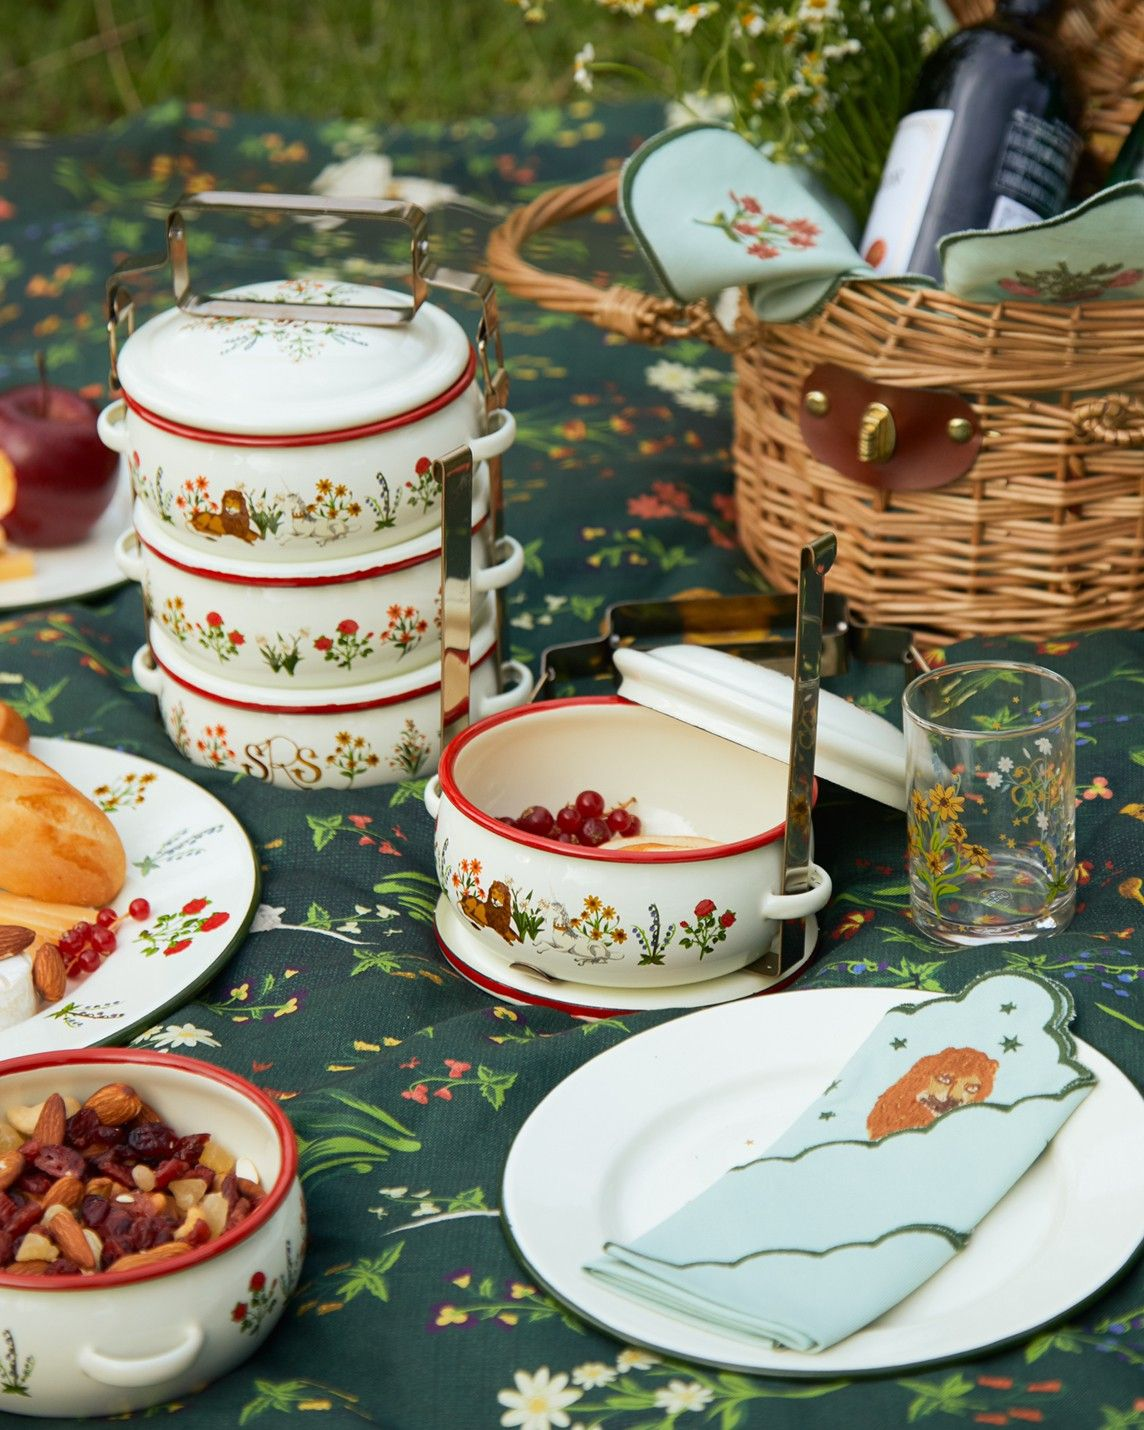 Bring The Fantasy Into Your Home With Sretsis Tableware